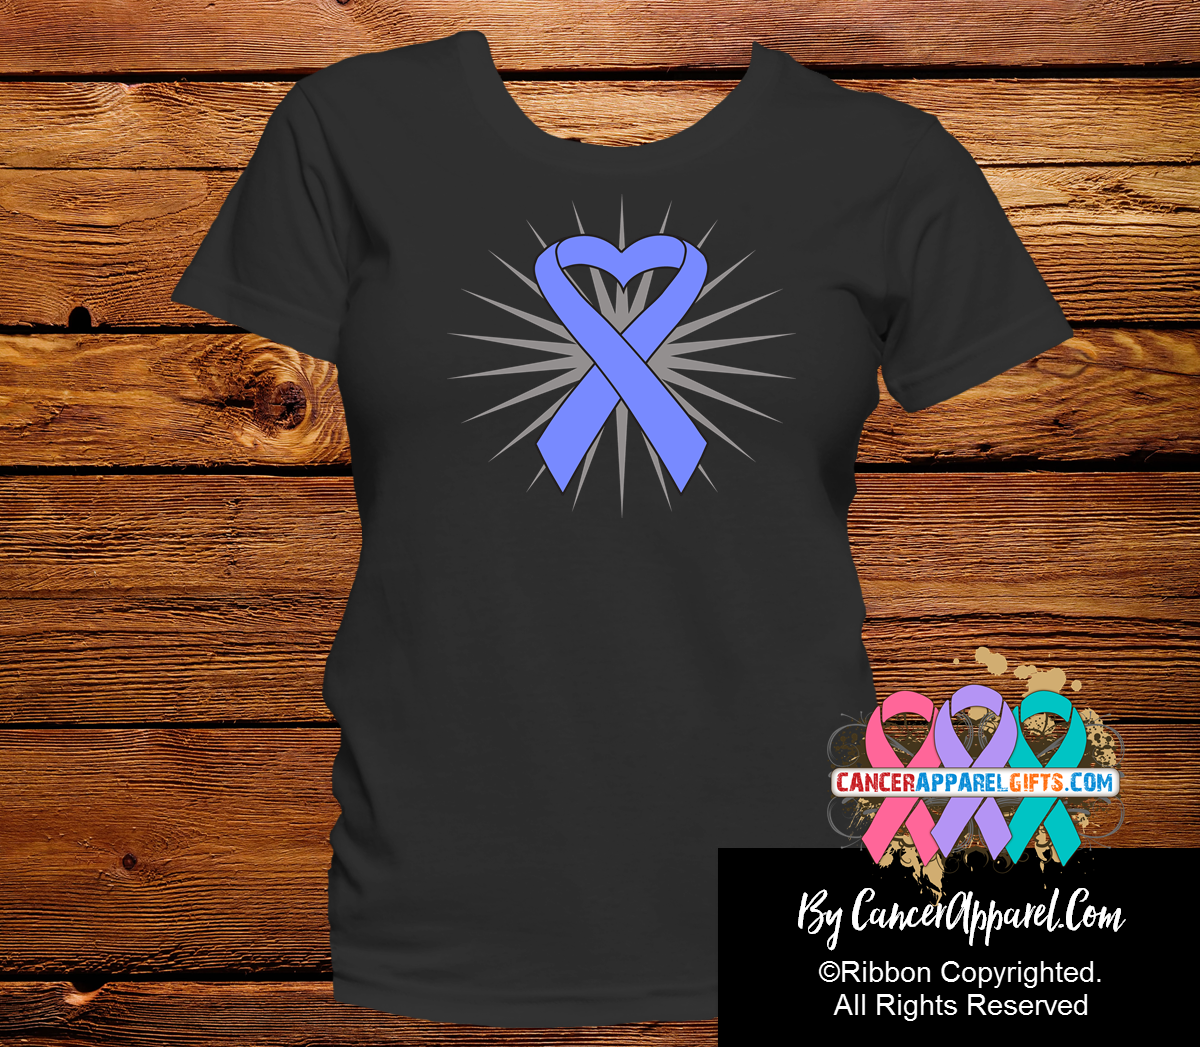 Esophageal Cancer Awareness Heart Ribbon Shirts - Cancer Apparel and Gifts